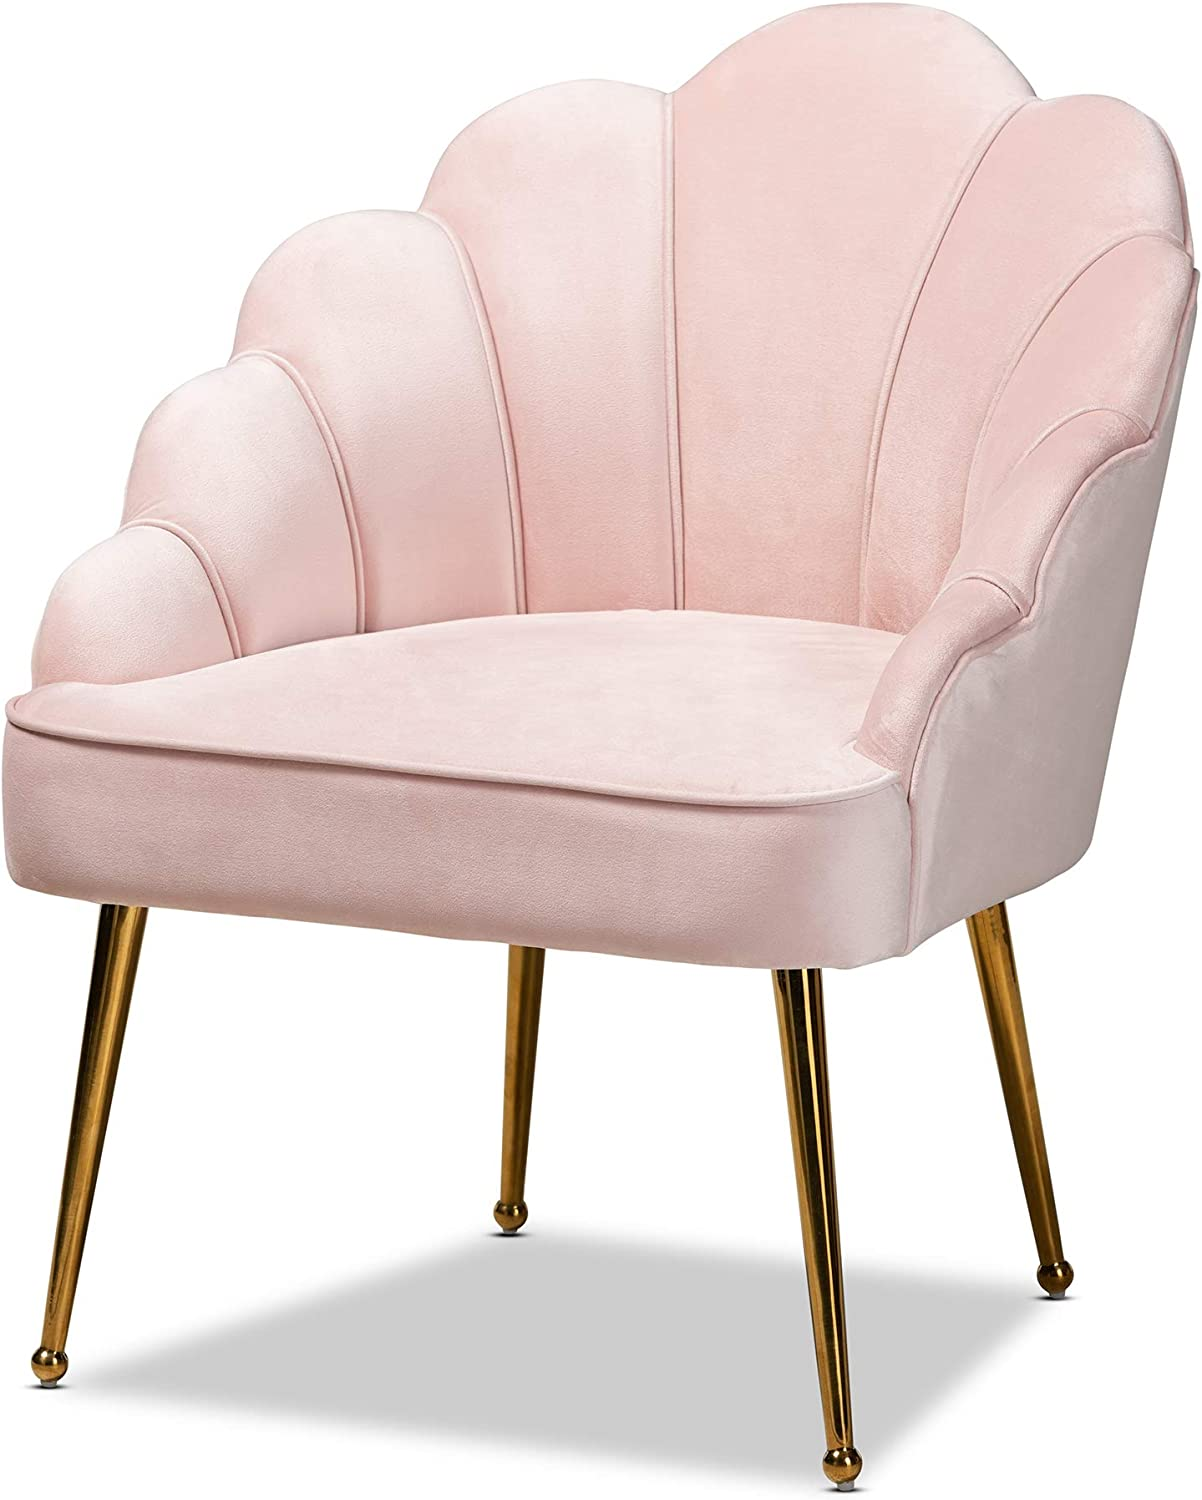 Baxton Studio Chairs Light OFFicial site Gold Pink Outstanding